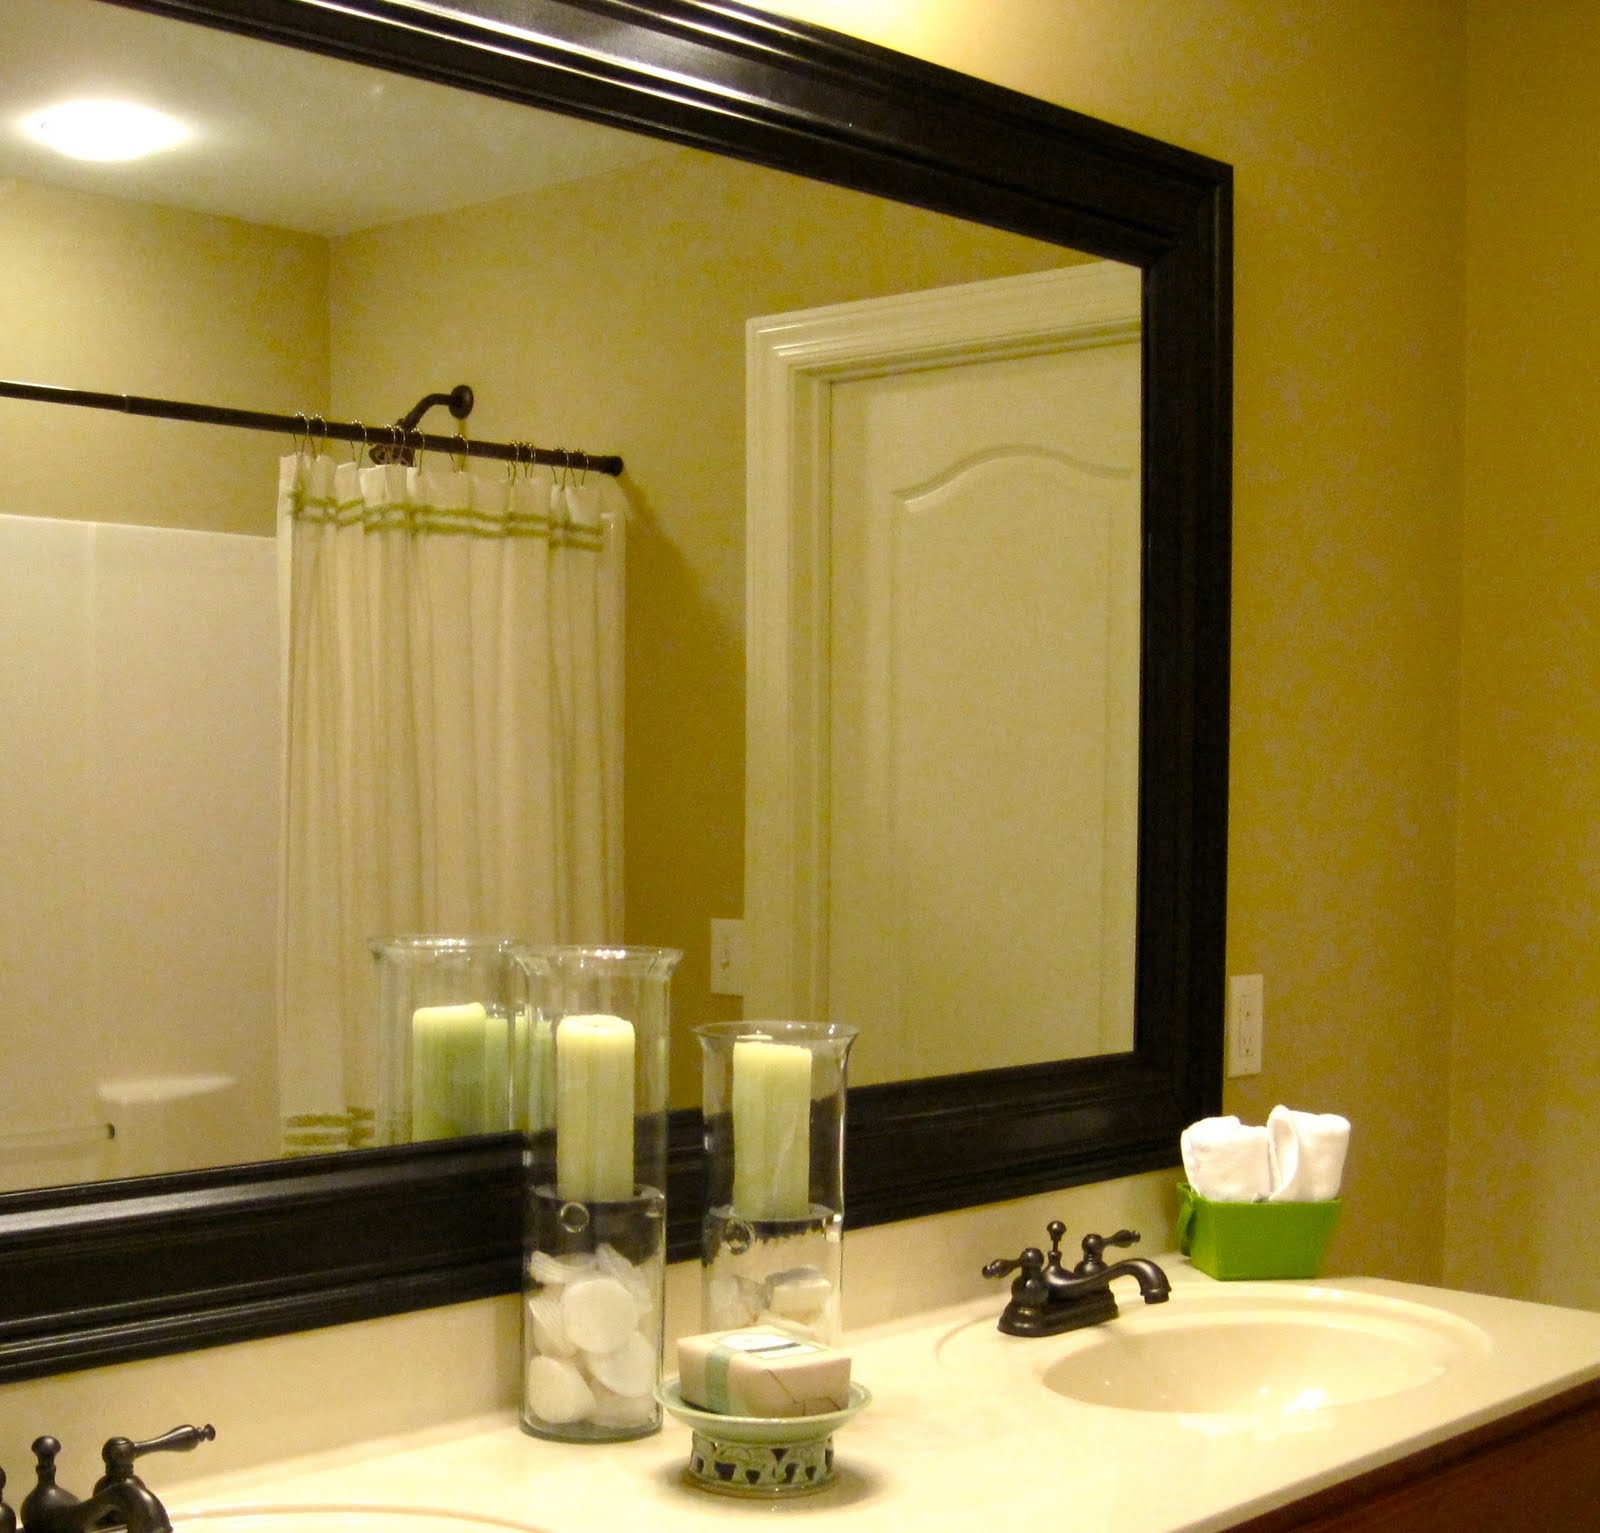 corecoloro and the imaginings bathroom mirror frame 26093